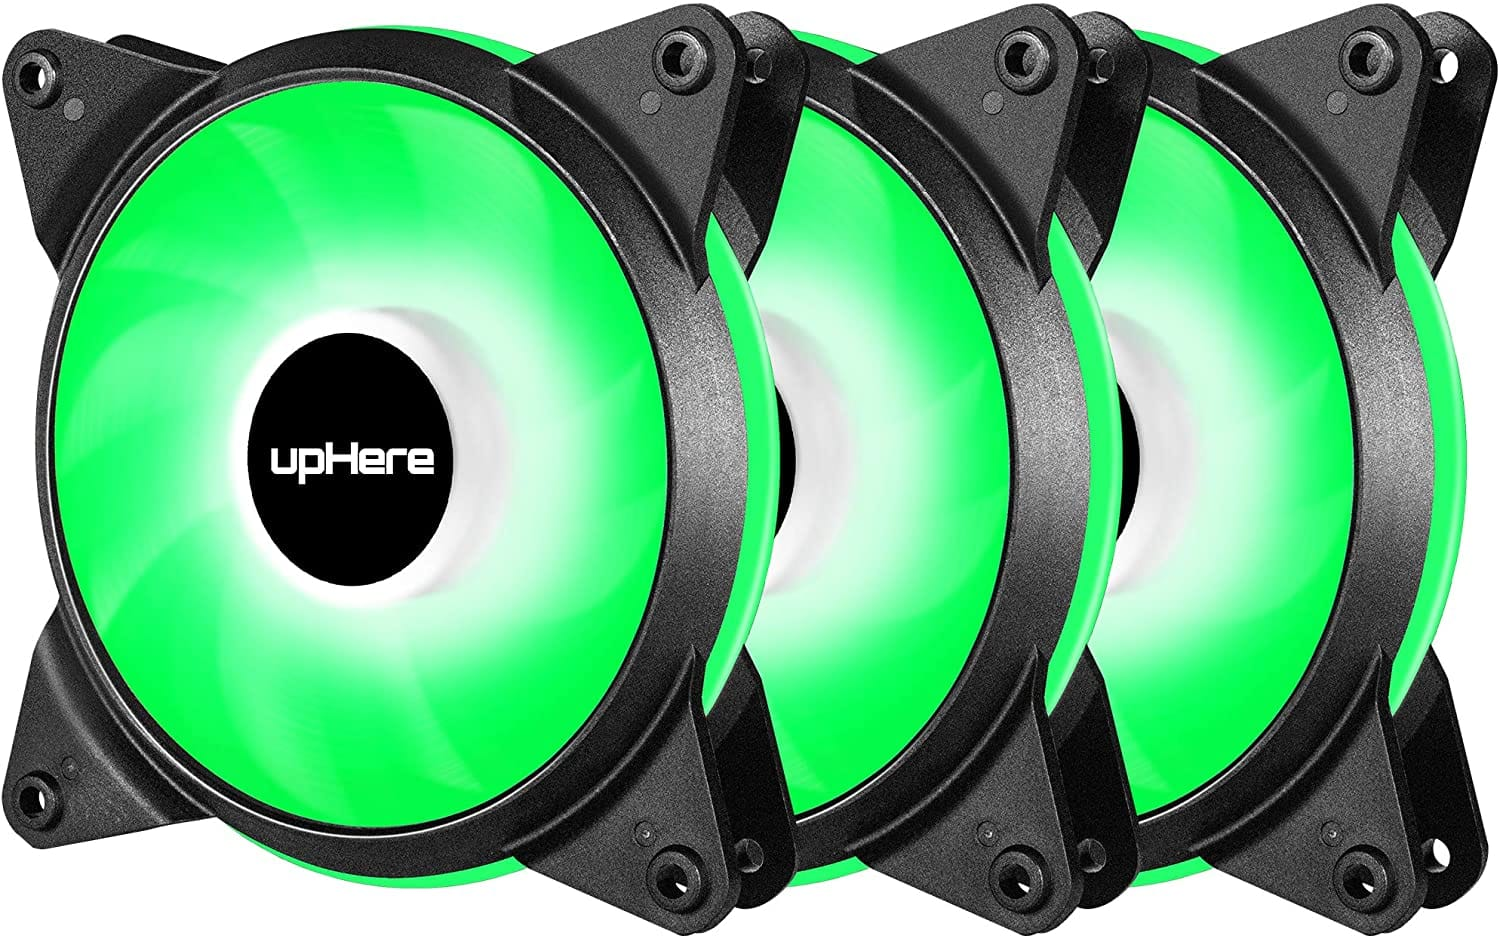 upHere 3-Pack 120mm High Airflow Quiet Edition Green LED Case Fan pwm 4in for PC Cases T4GN4-3 $9.99